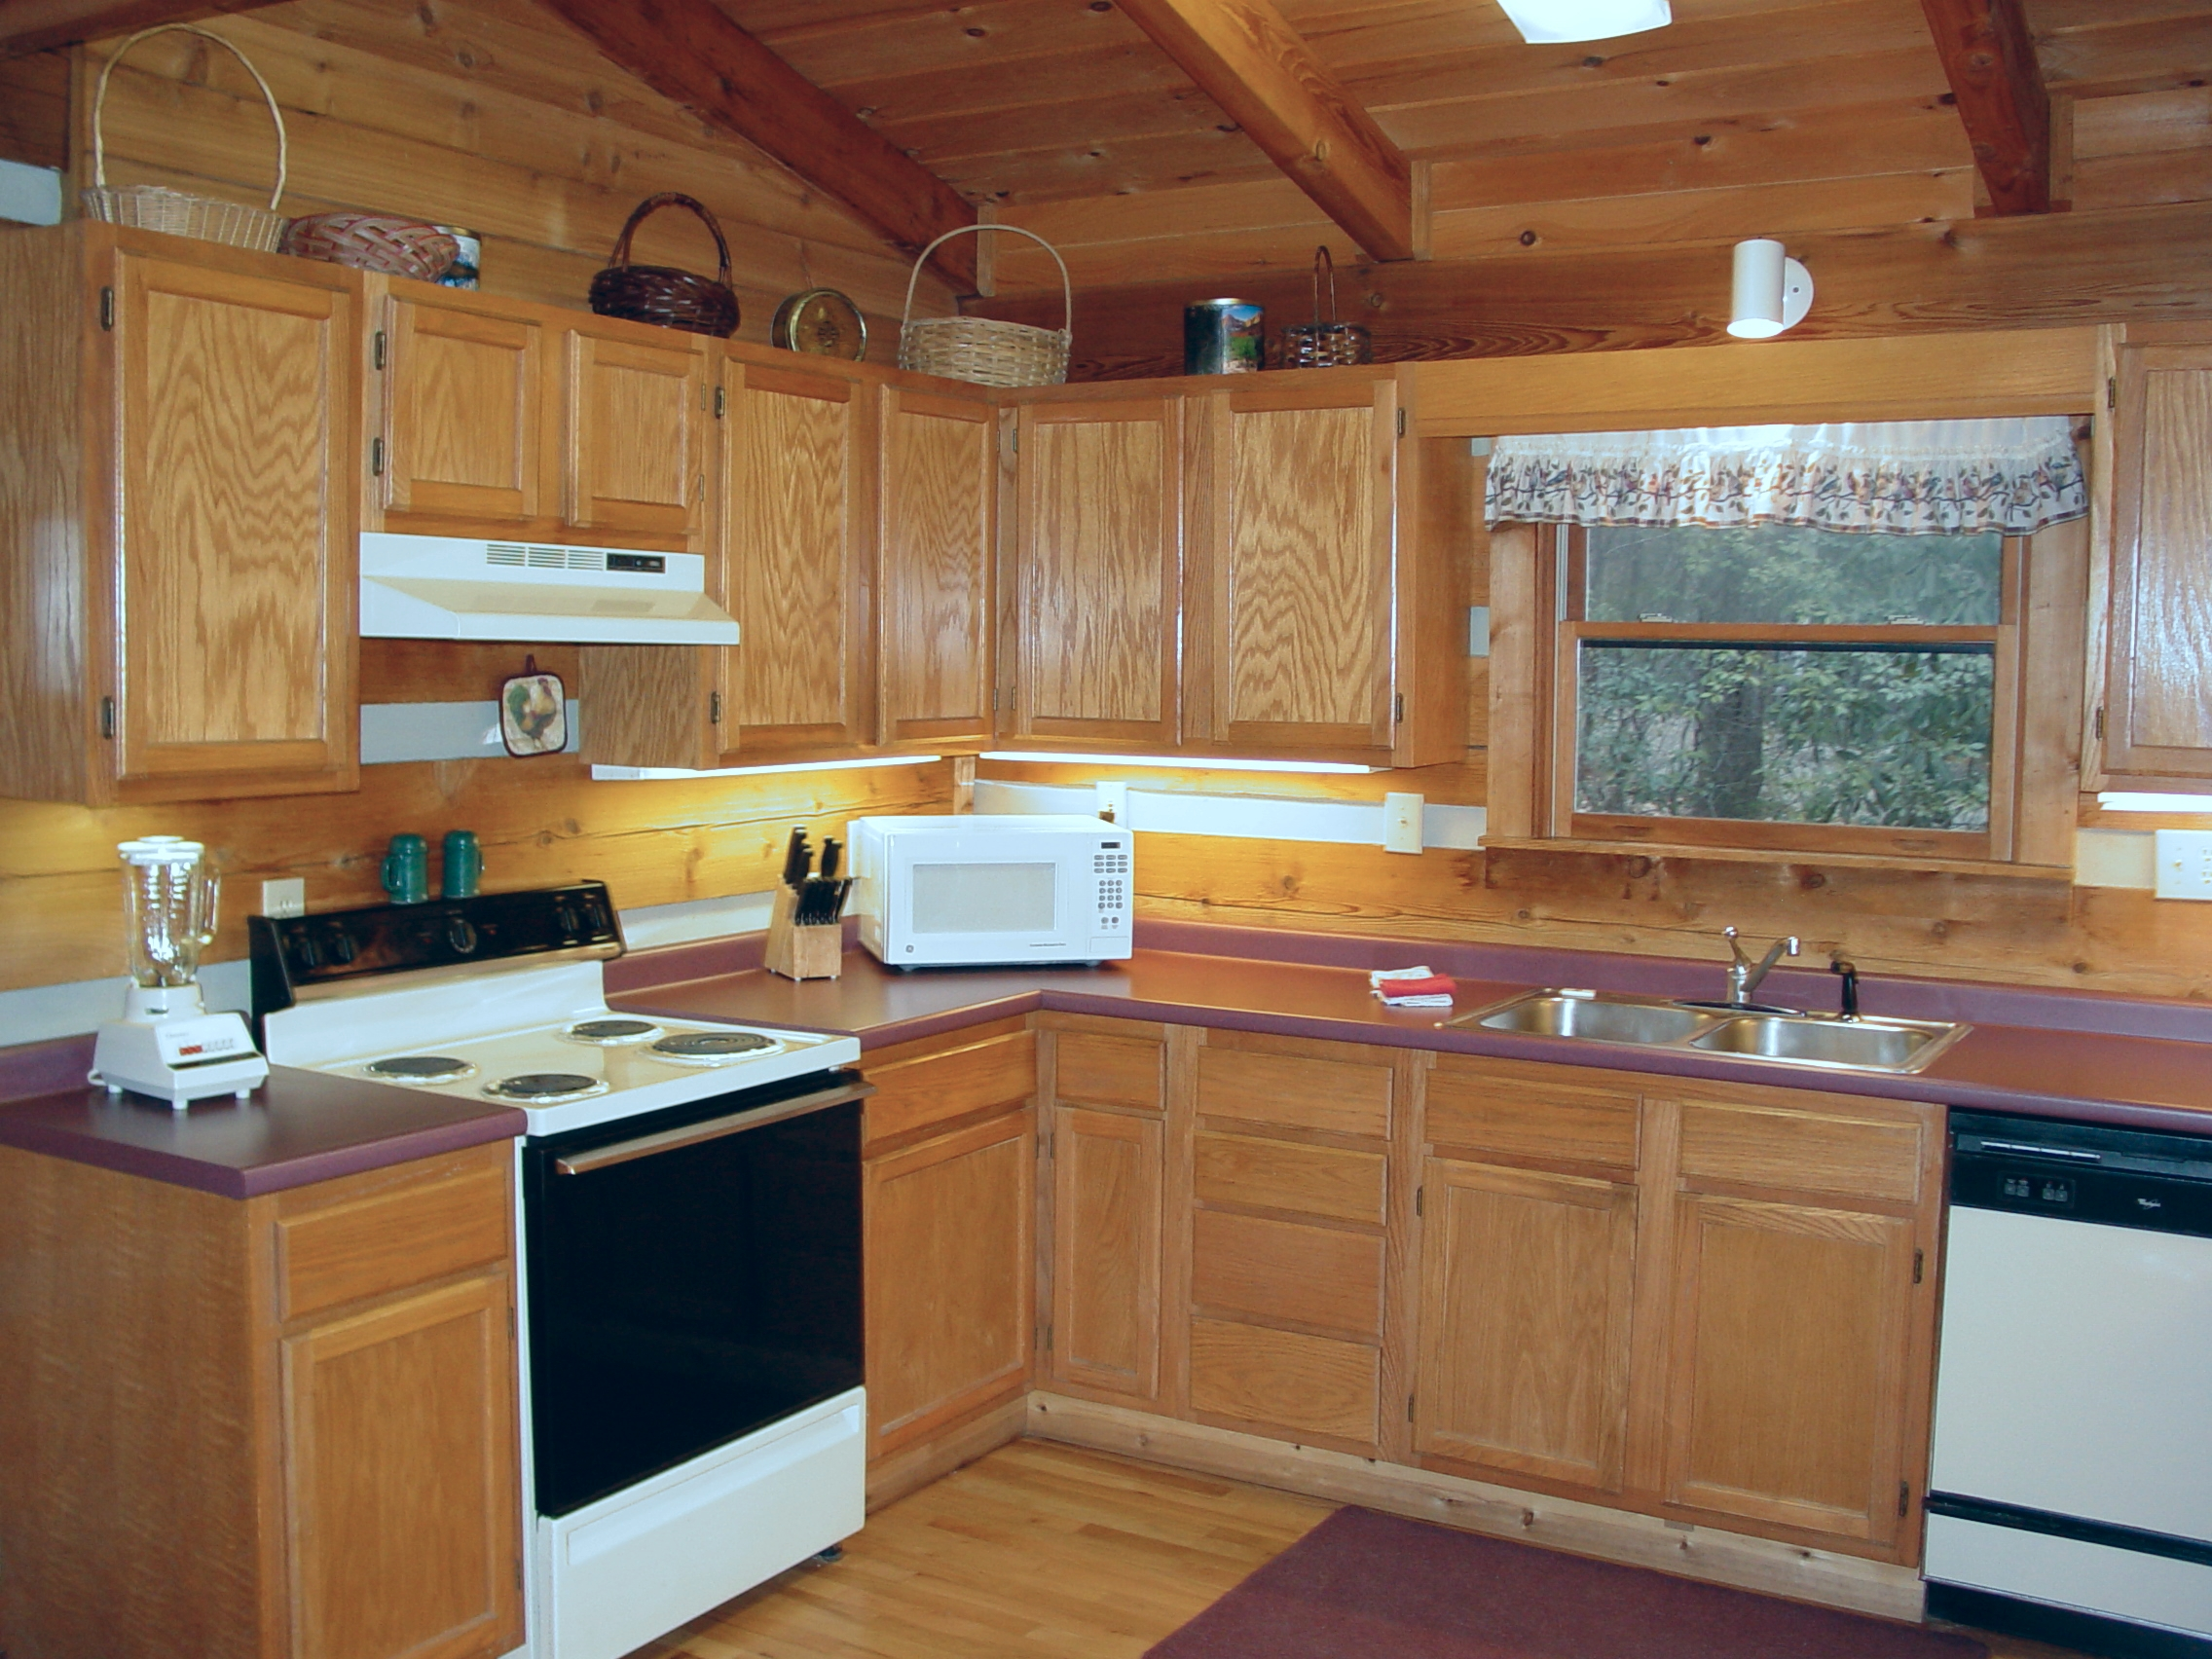 CO_Kitchen_Jan_11_011.jpg